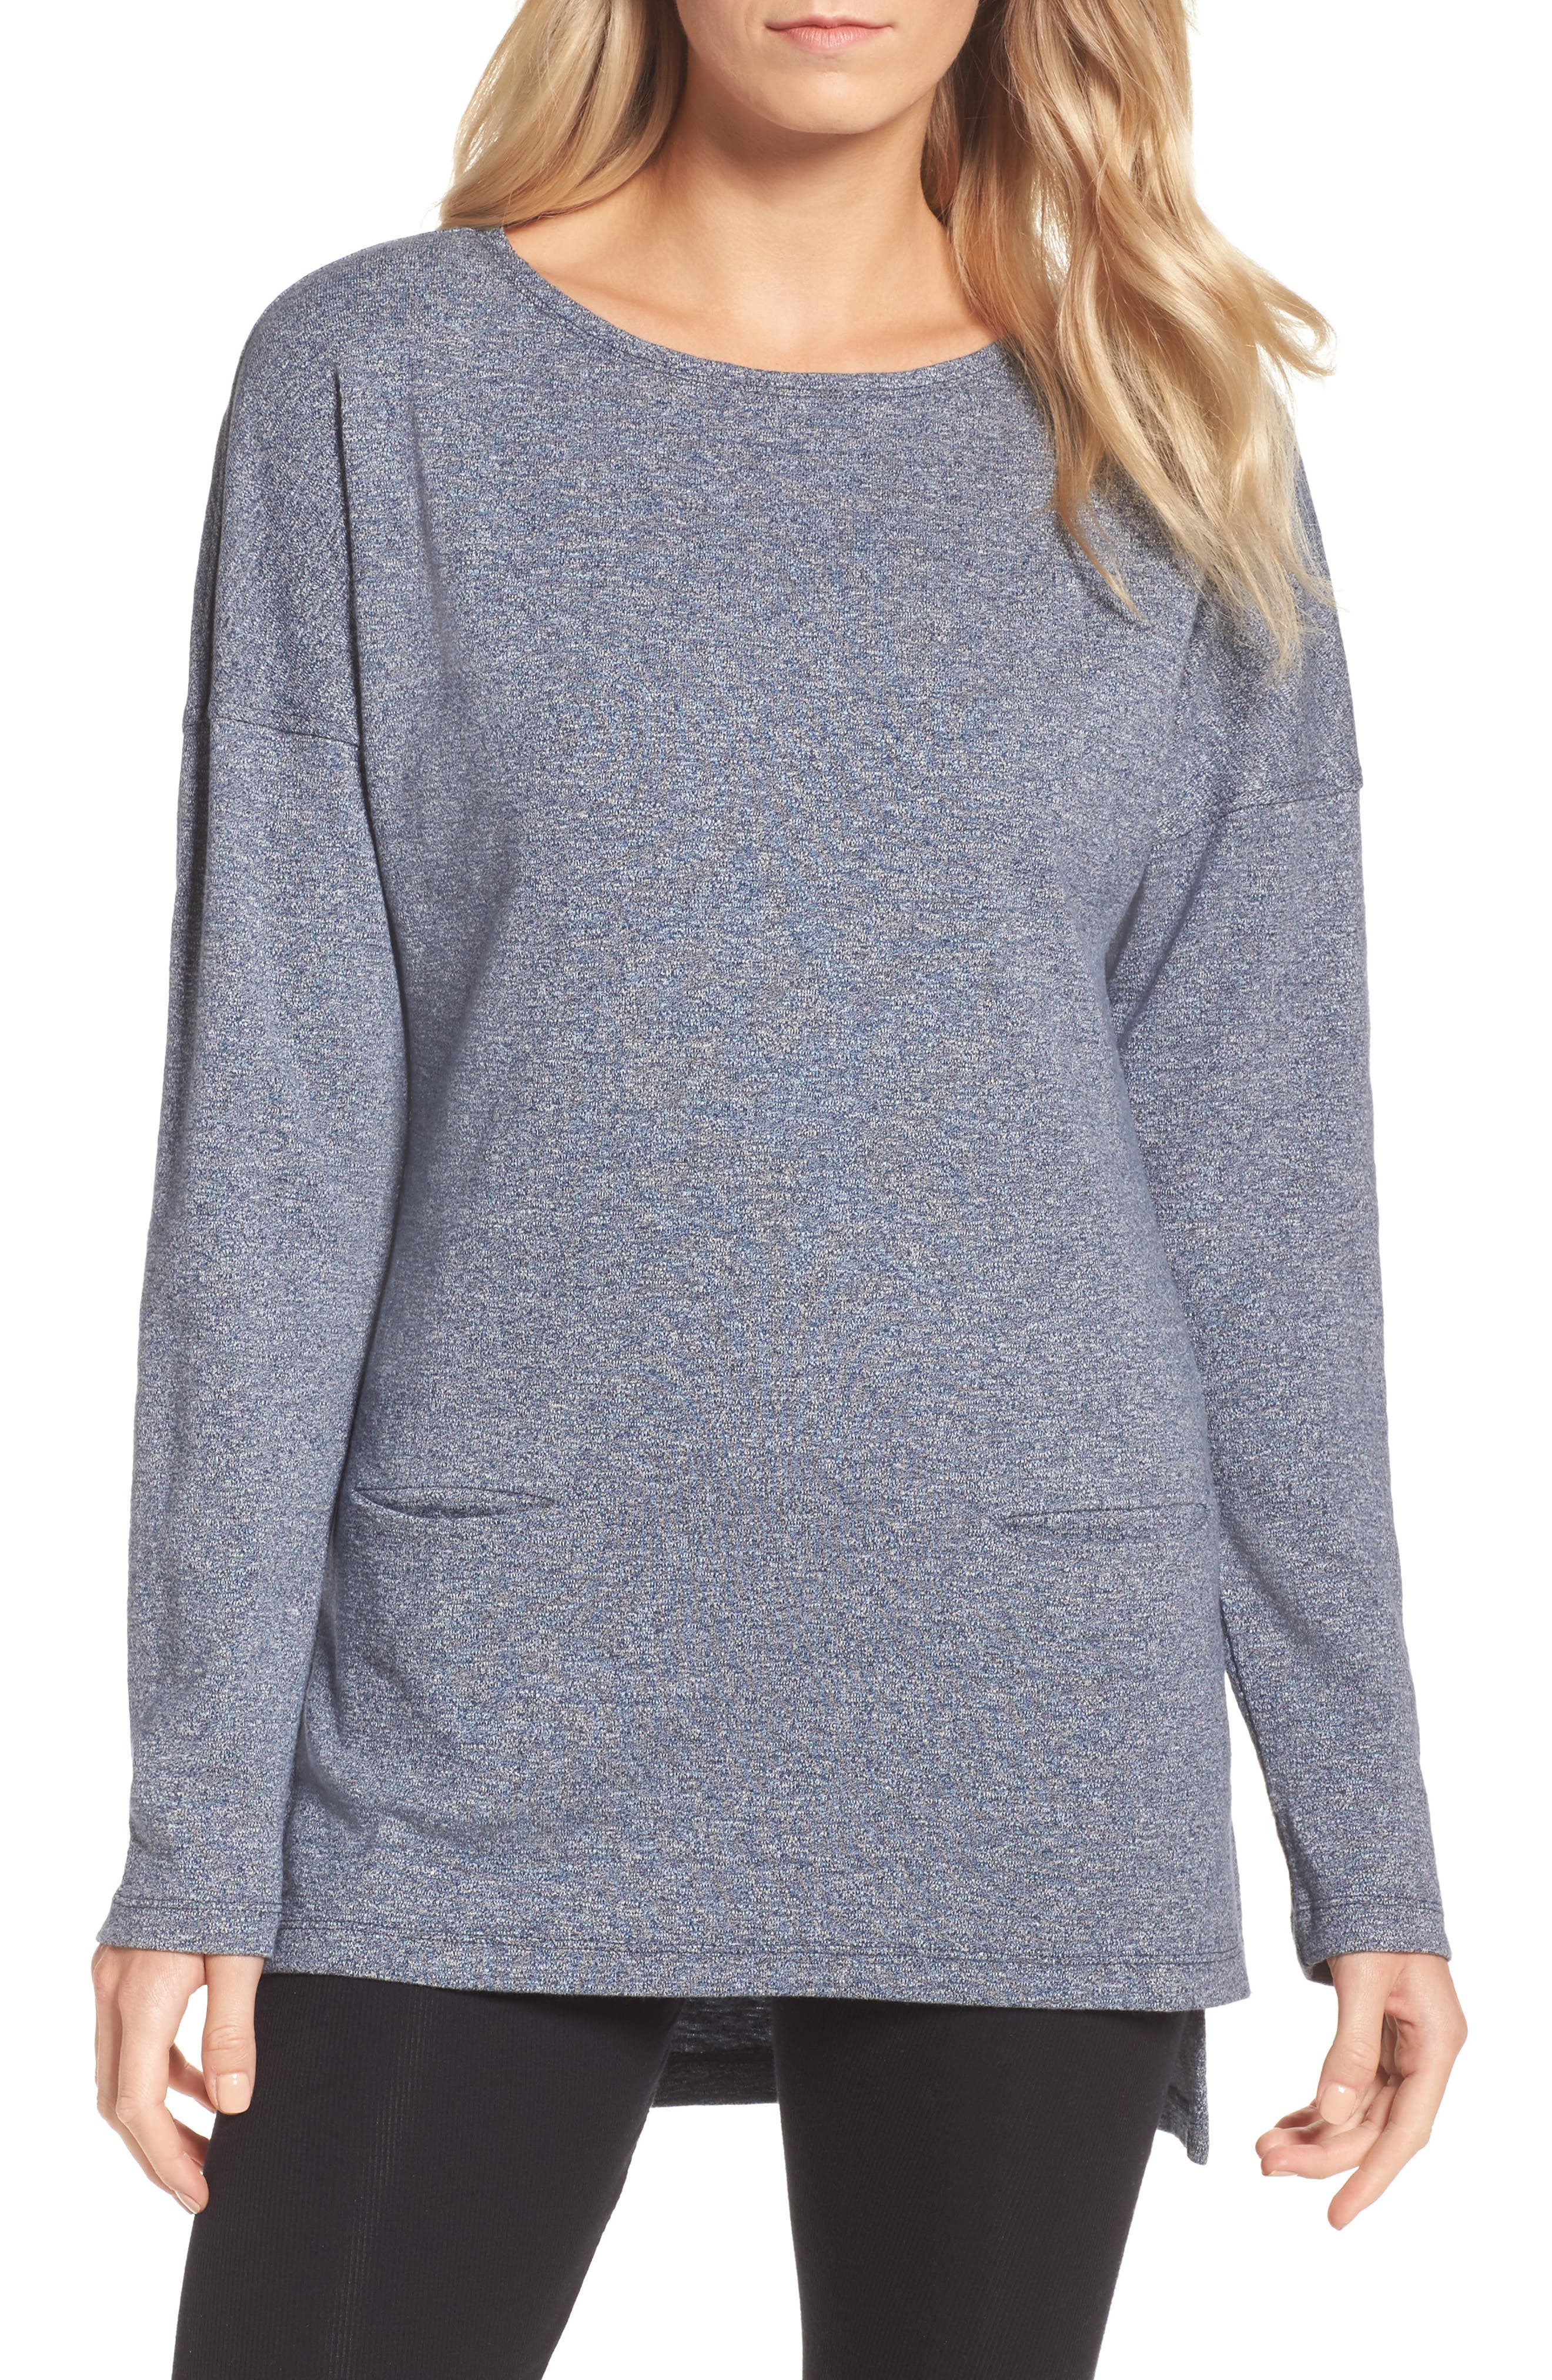 Main Image - UGG® Luella High/Low Cotton Pullover